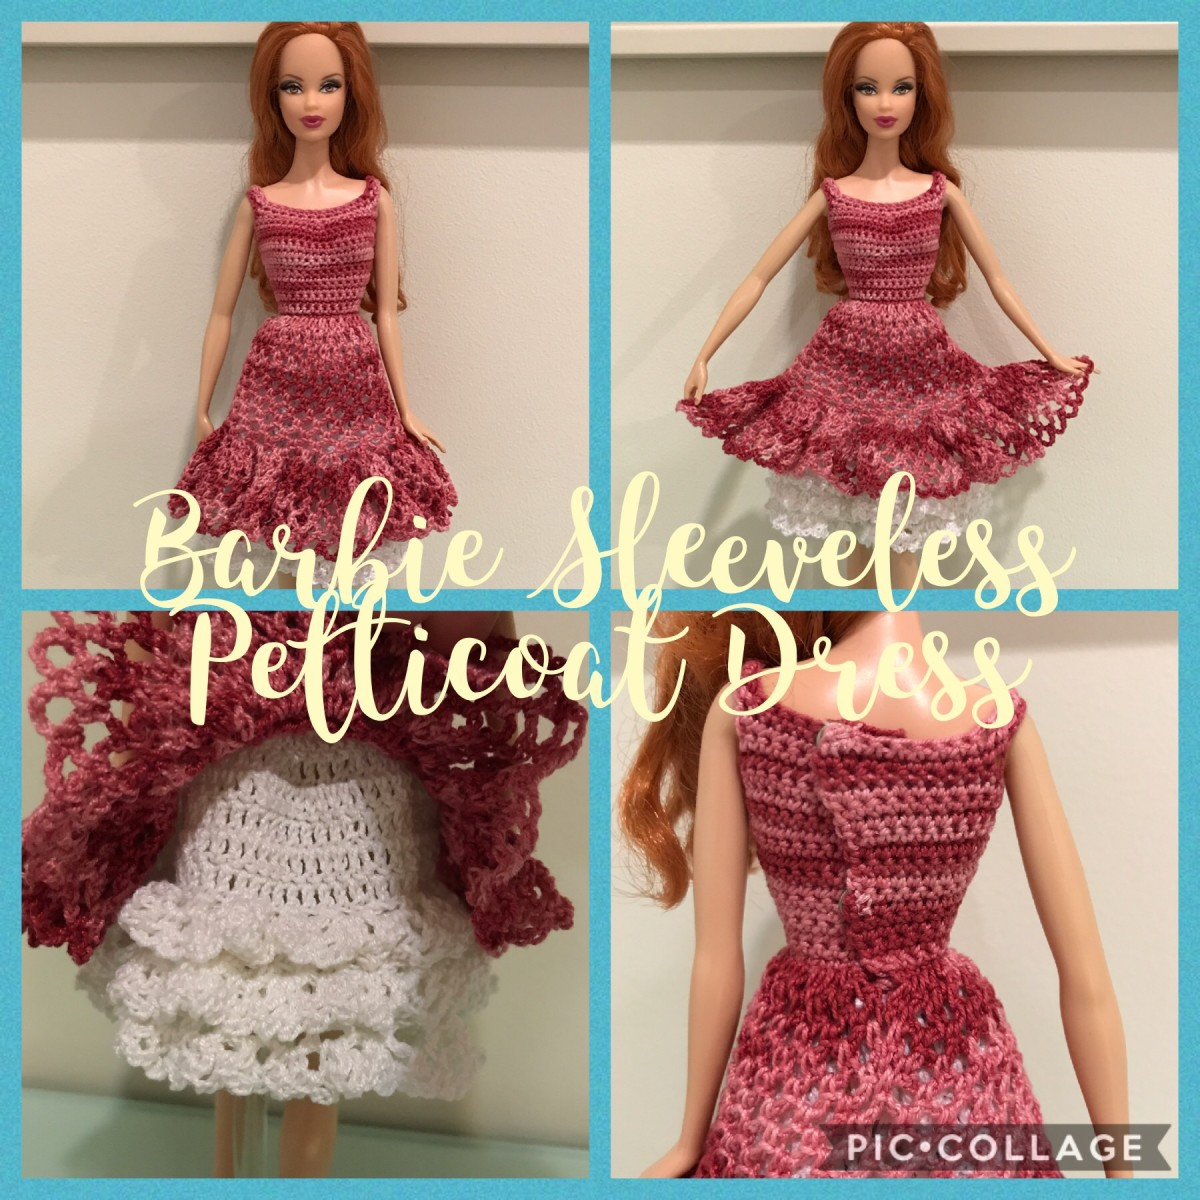 Barbie Sleeveless Petticoat Dress